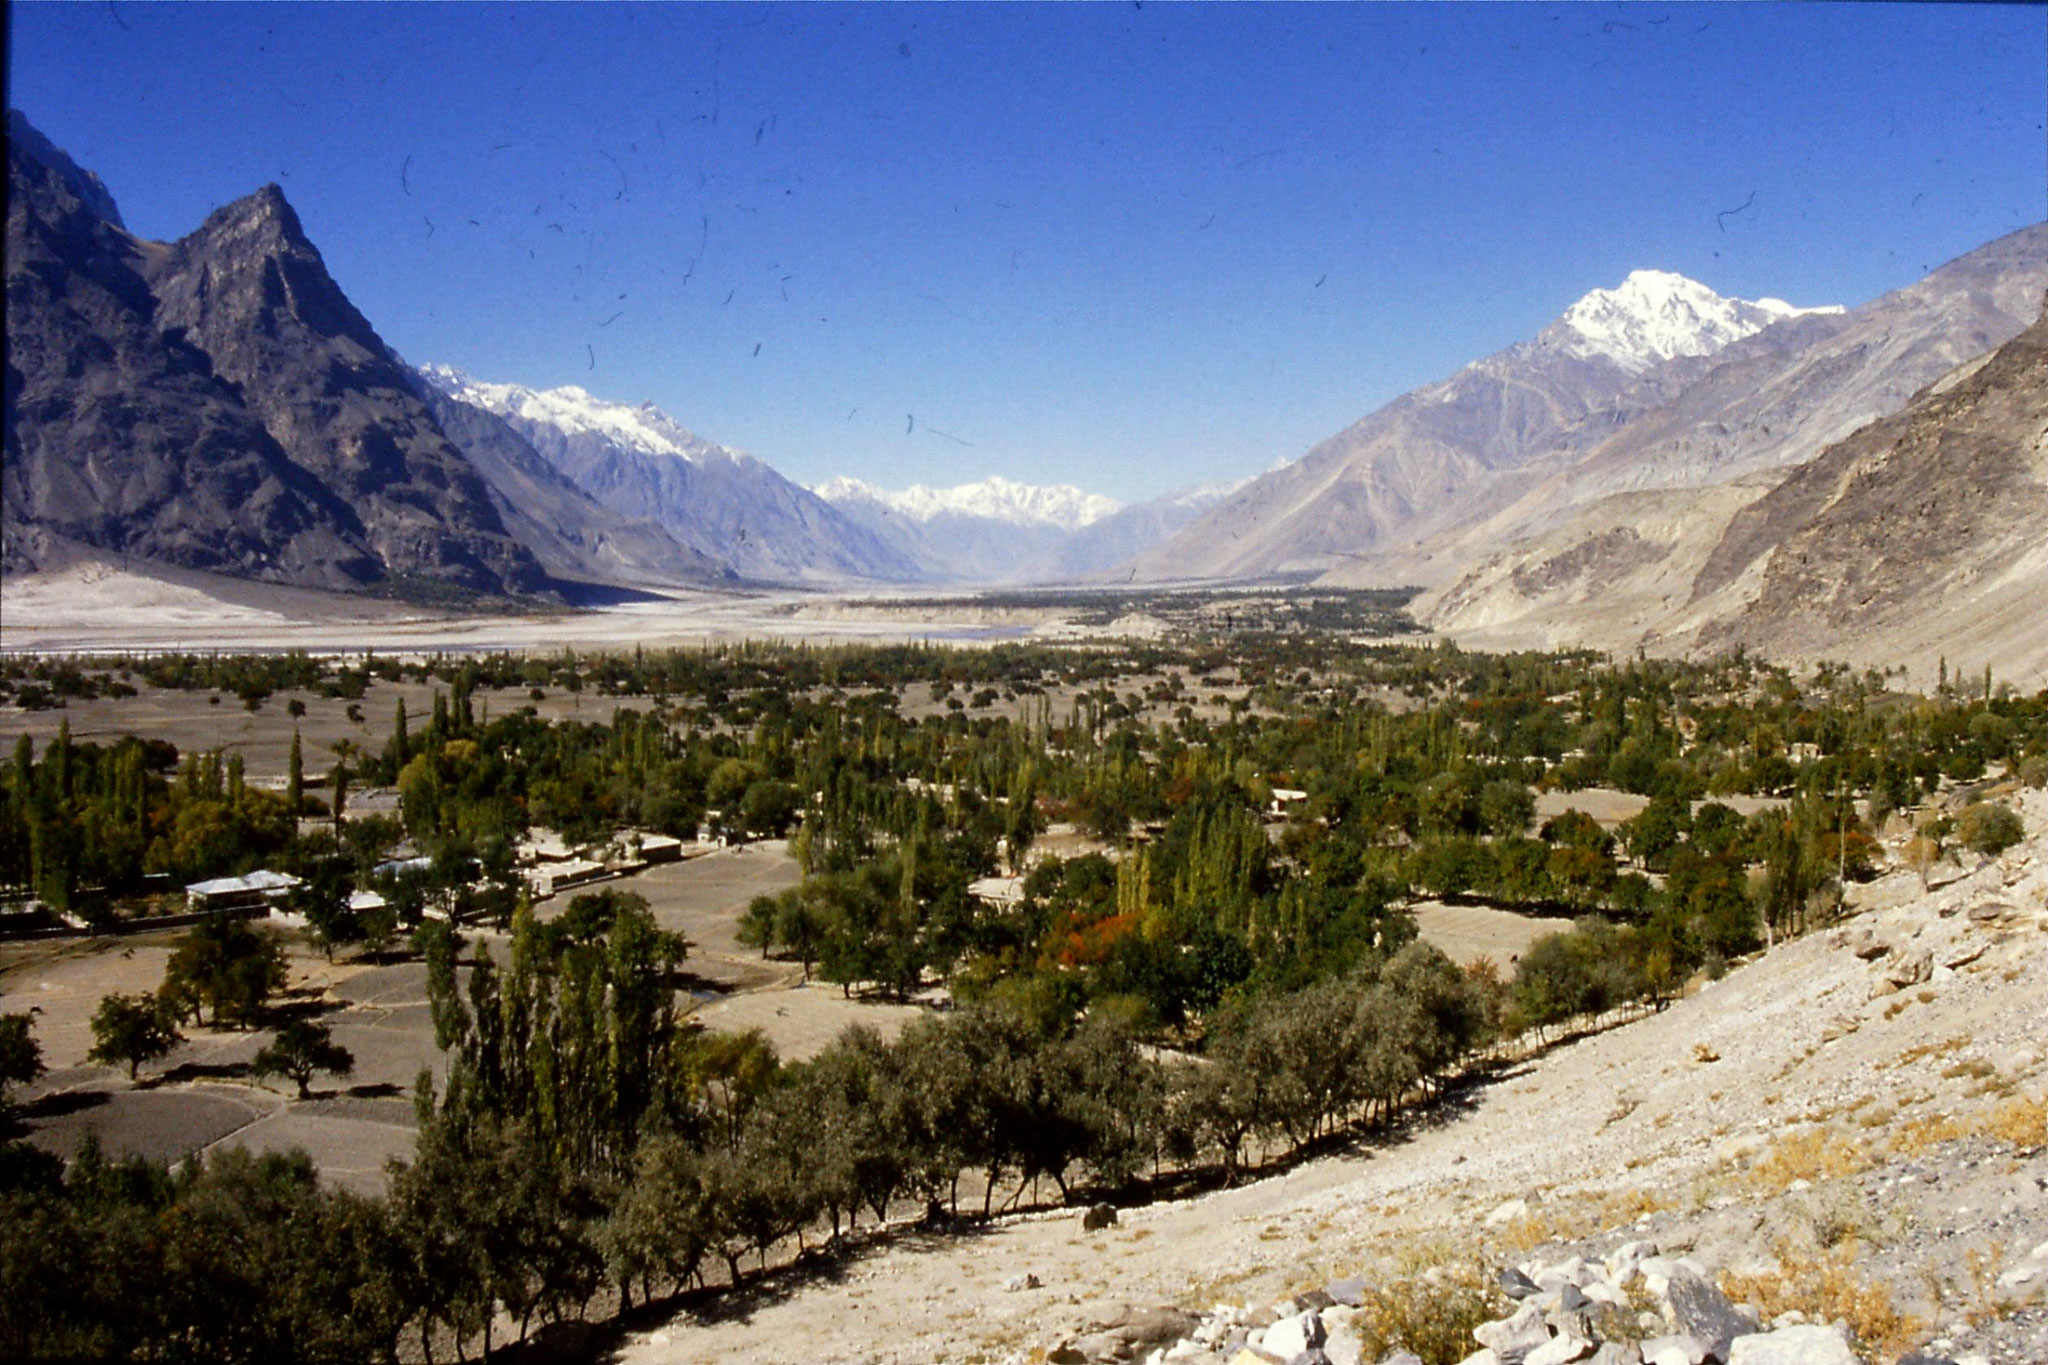 20/10/1989: 13: Shigar valley looking north